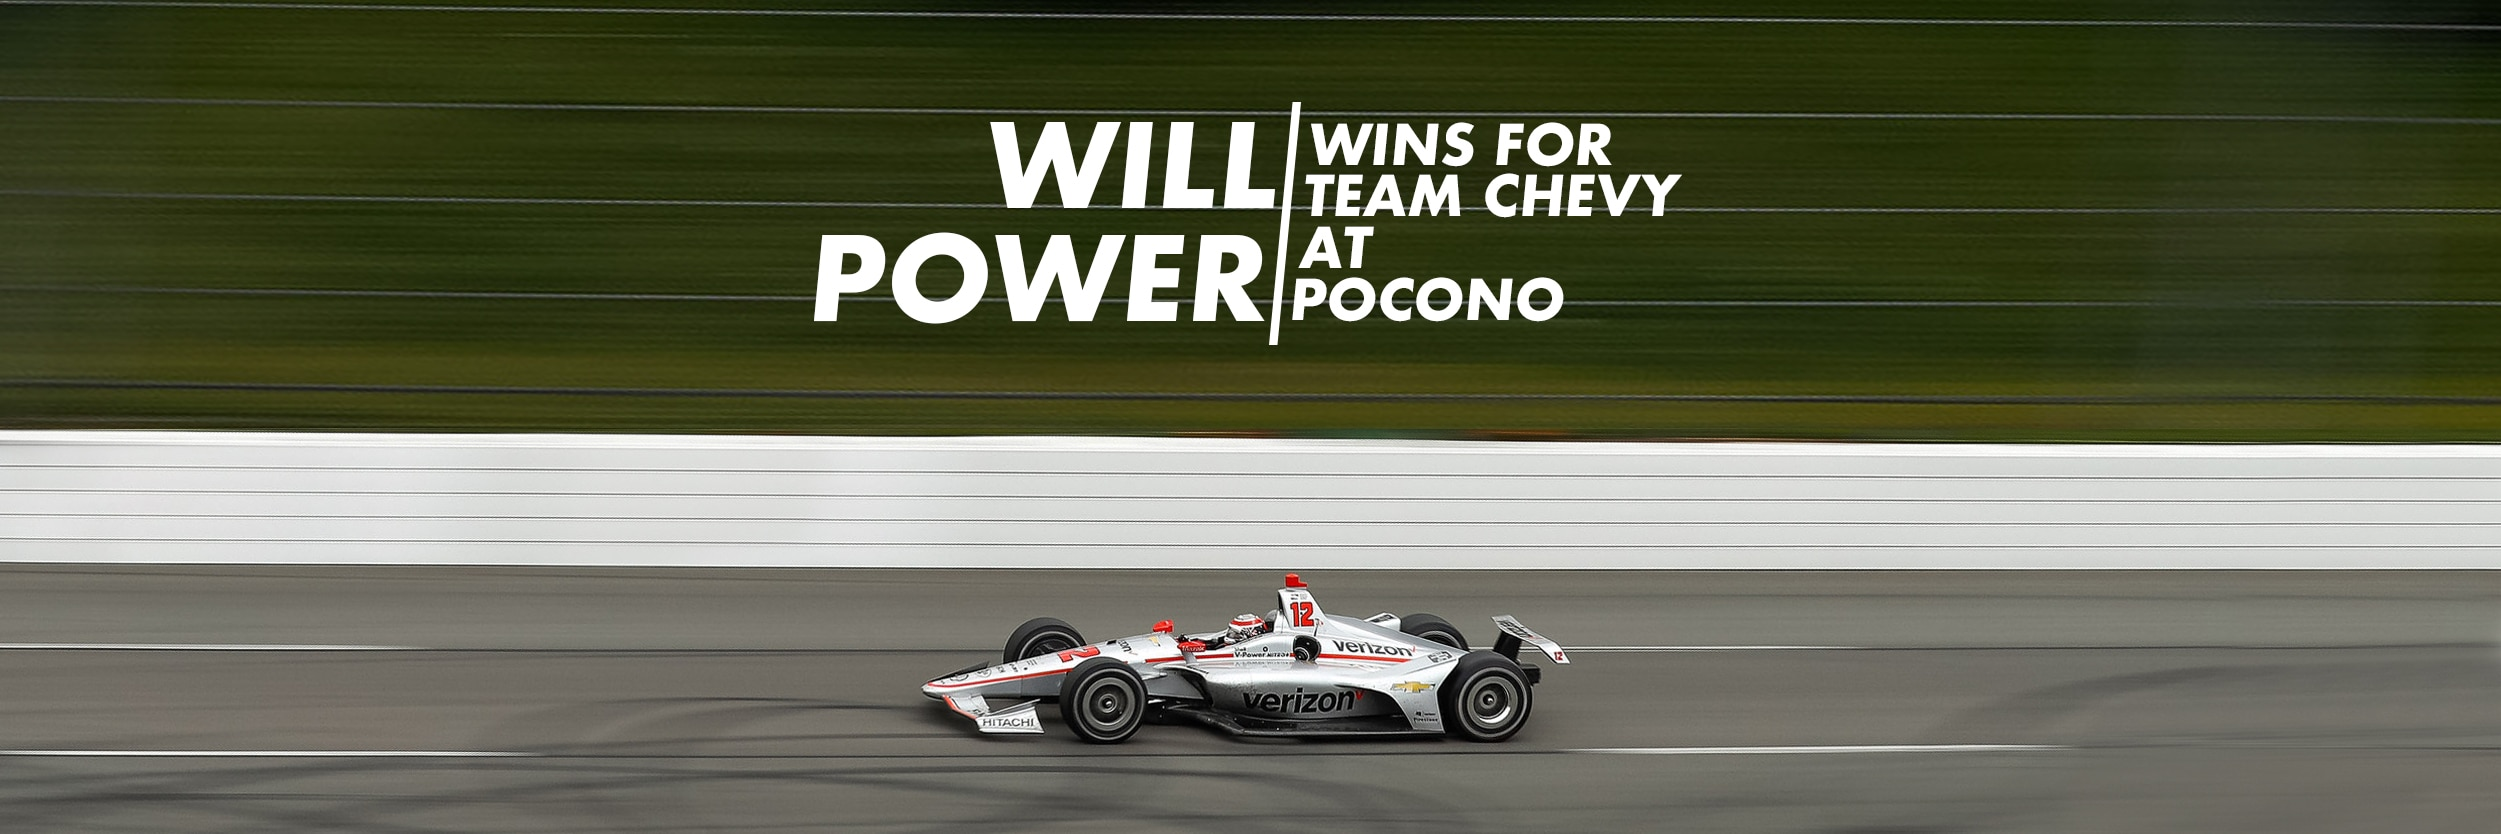 Racing, Motorsports, Chevy, Chevrolet, Chevrolet Performance, IndyCar, Pocono, Pocono Raceway, Team Chevy, NTT IndyCar Series, Team Penske, Will Power, ABC Supply 500